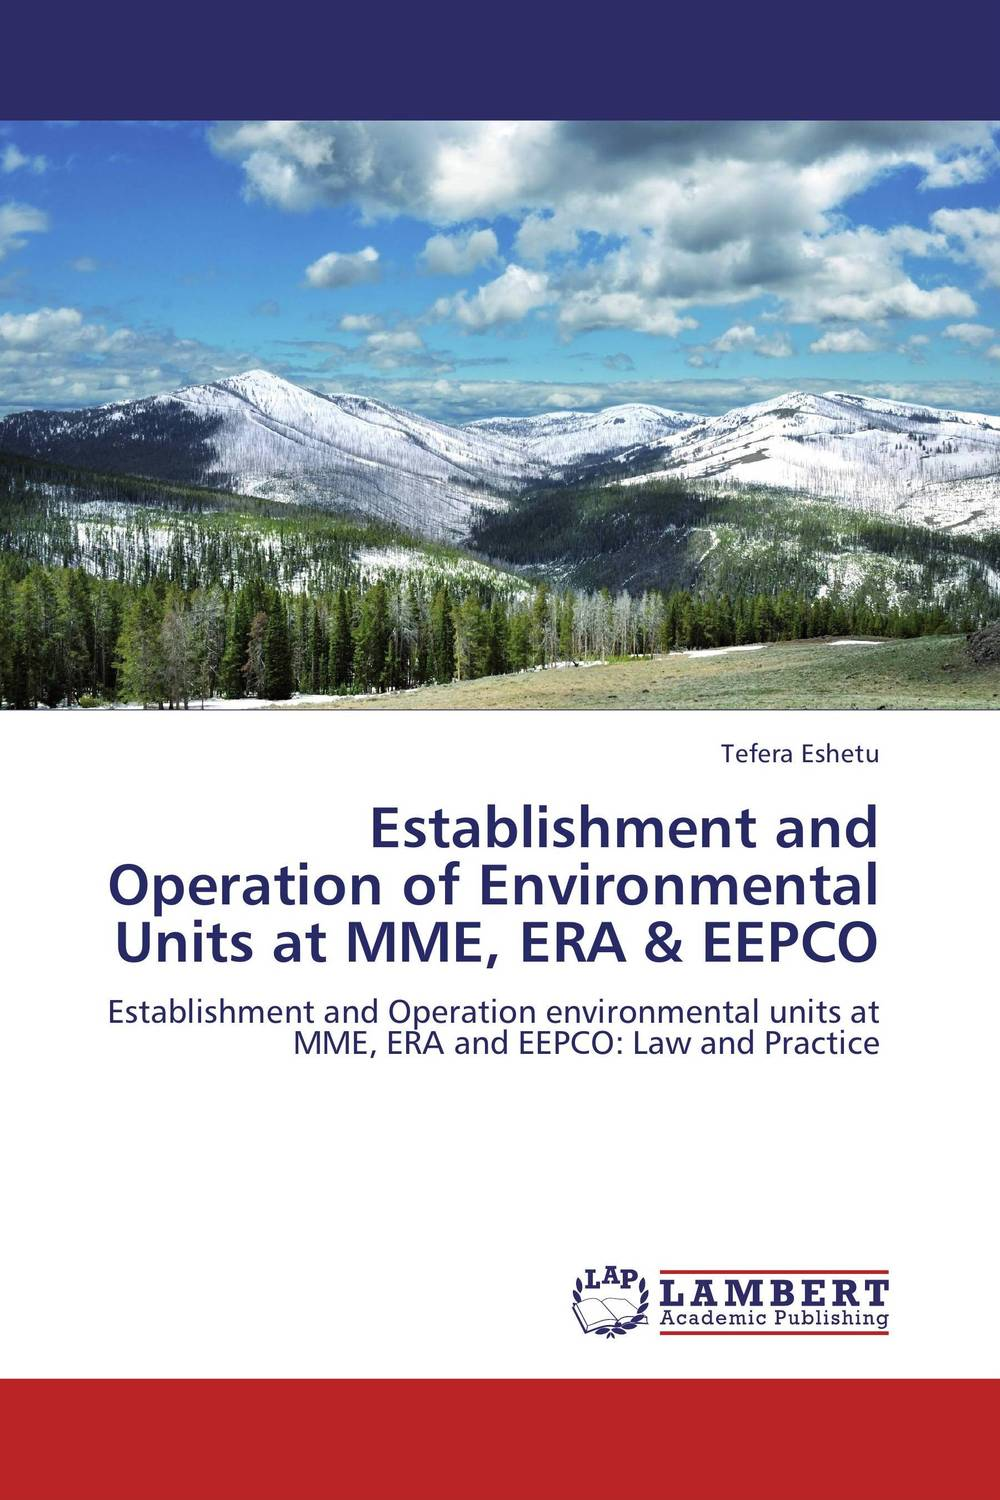 Establishment and Operation of Environmental Units at MME, ERA & EEPCO the auxiliary units